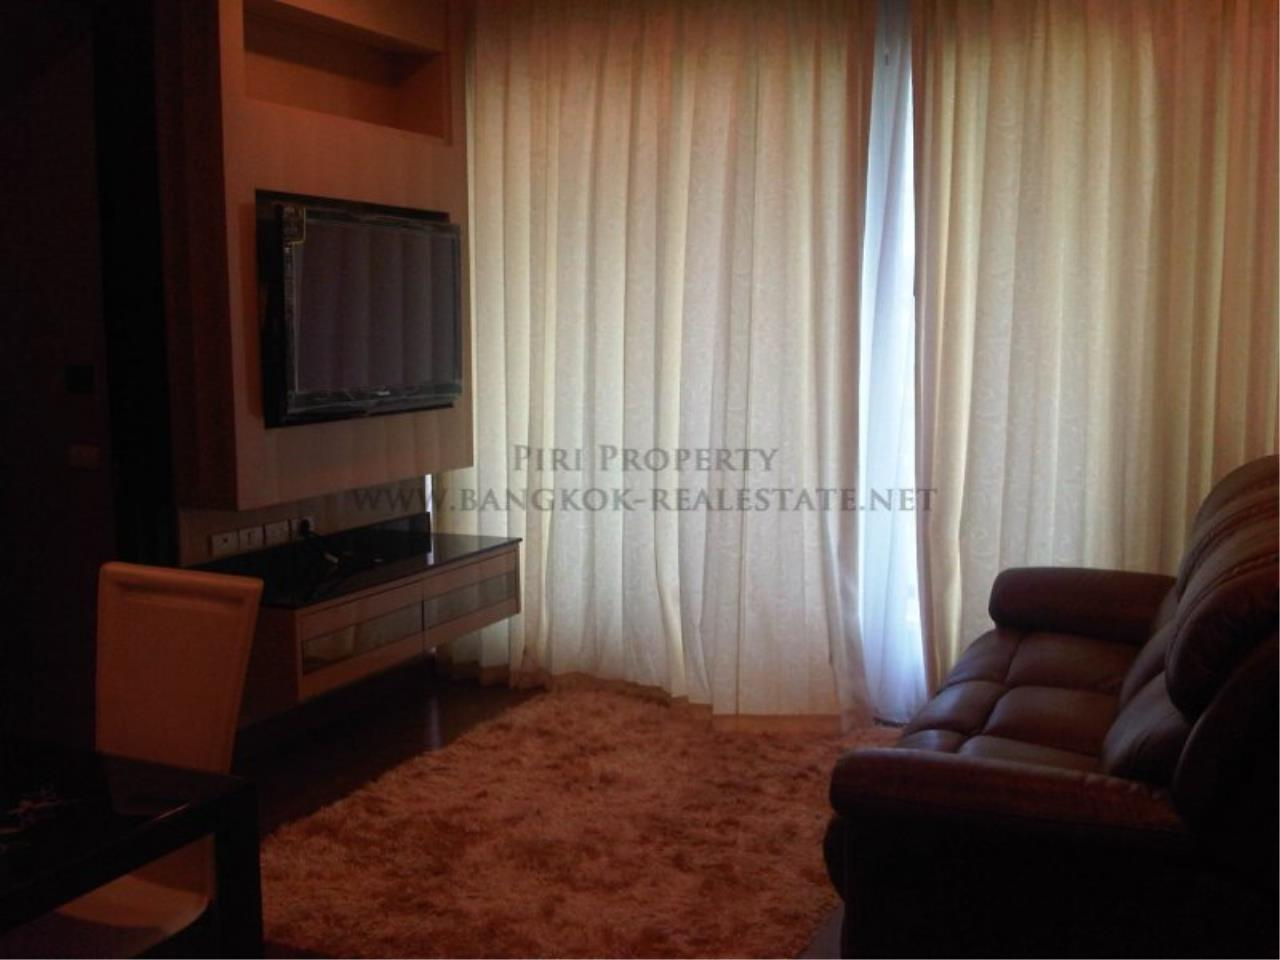 Piri Property Agency's The Address Chidlom - Spacious 2 Bedroom For Rent 1